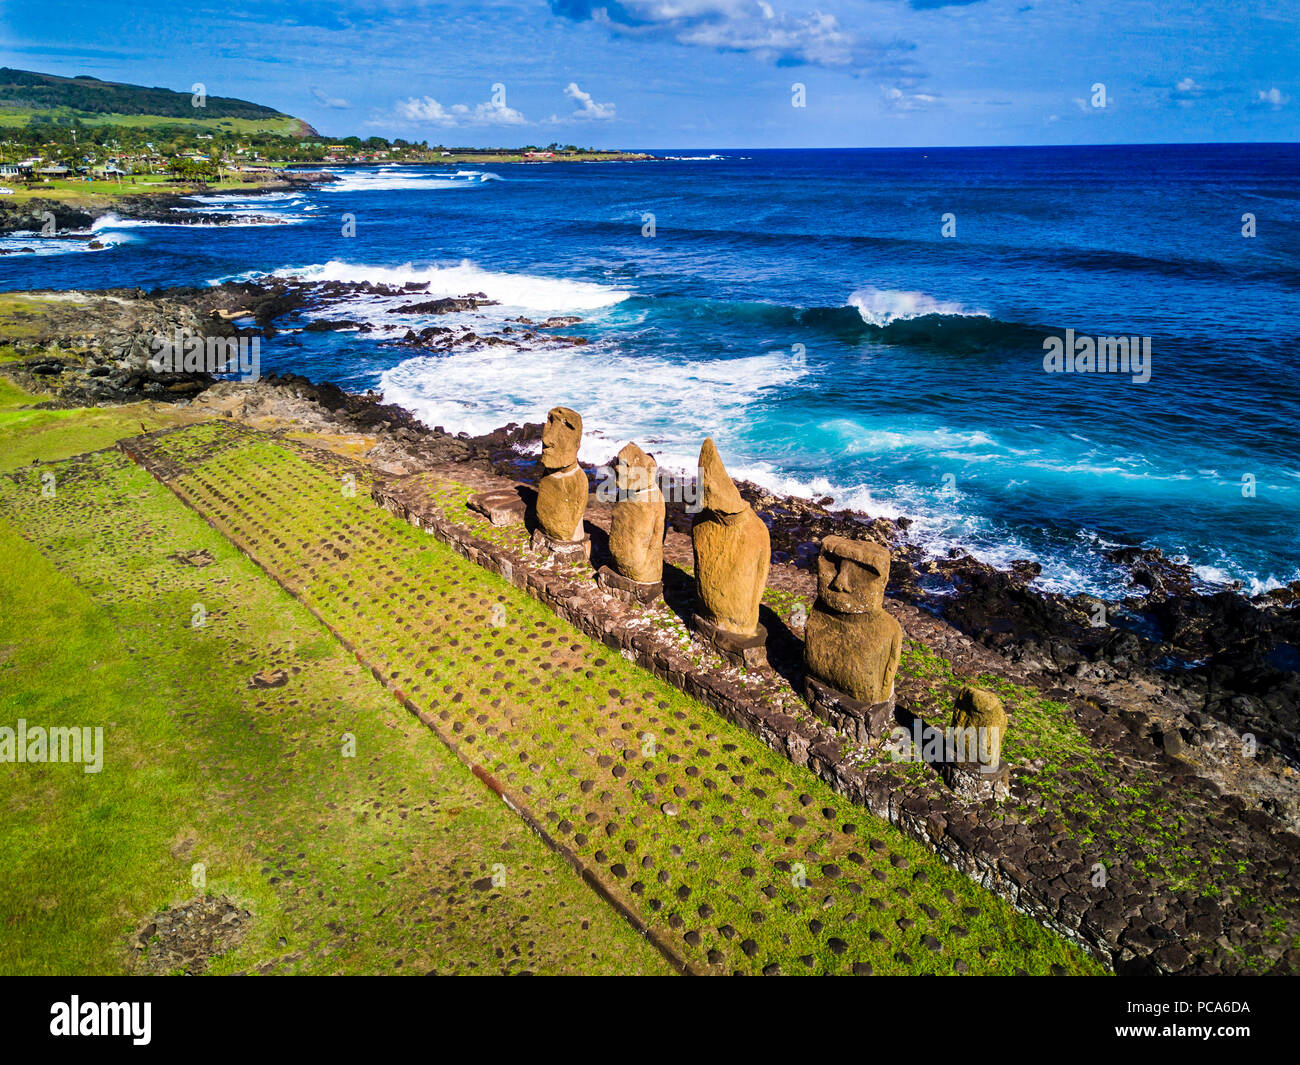 An Aerial View over Ahu Tahai alone Moai at Hanga Roa, Easter Island. This is the only one with painted eyes like it was on the past. - Stock Image